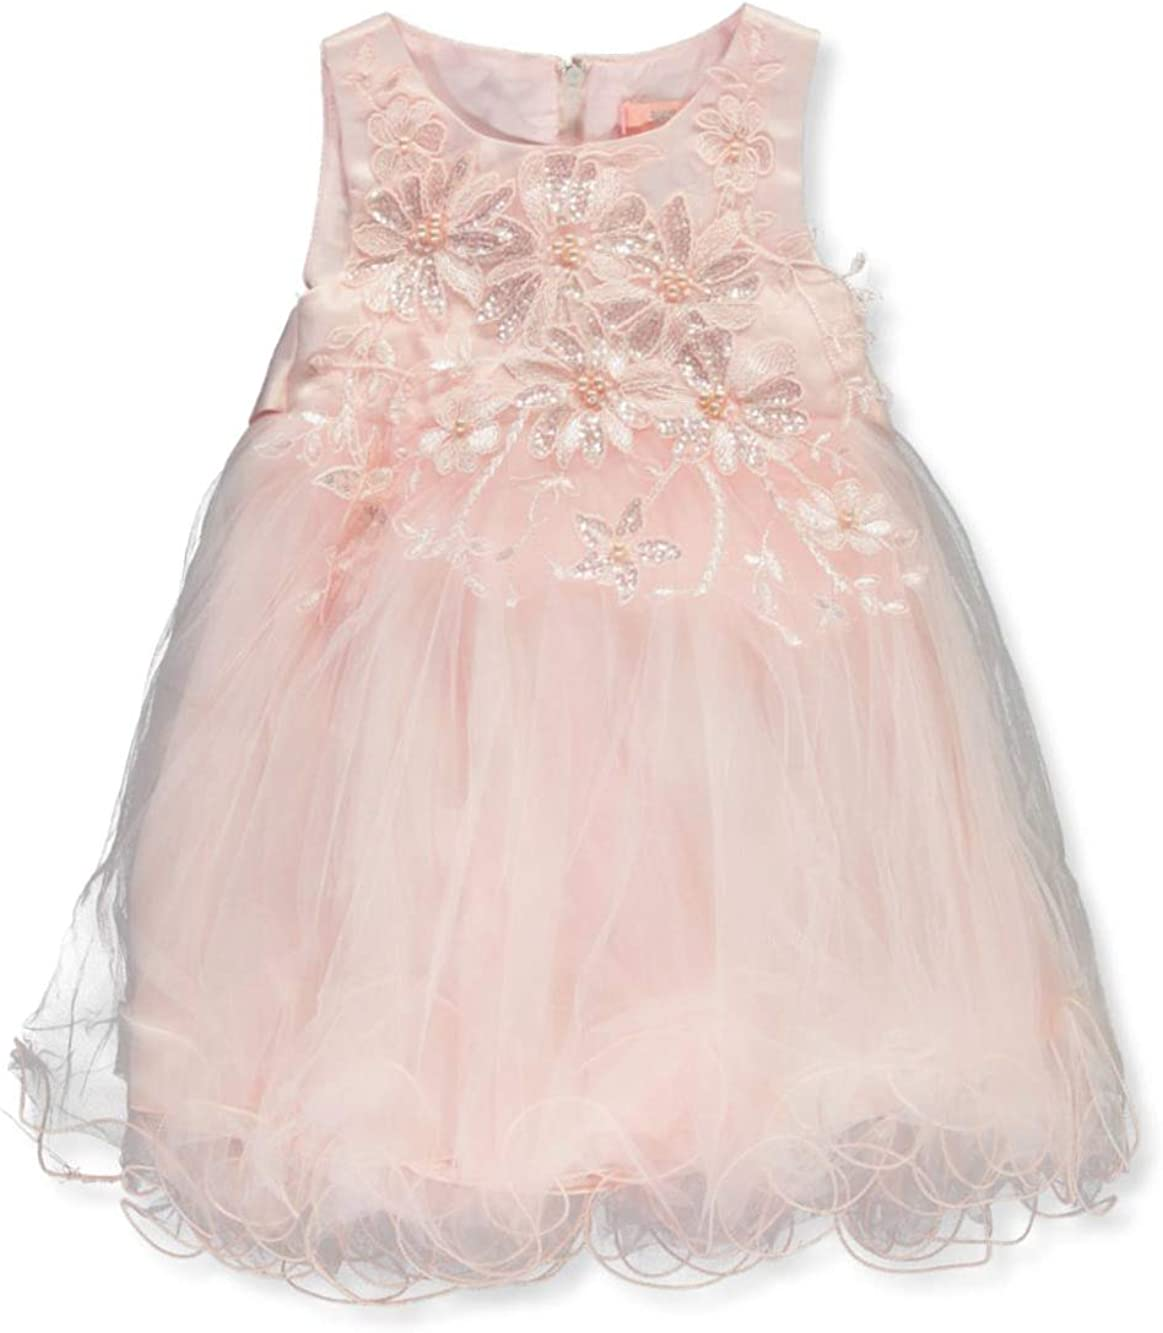 Pink Butterfly Baby Infant Long Beach Mall Floral Sequin - Long-awaited Blush Dress 24 Month